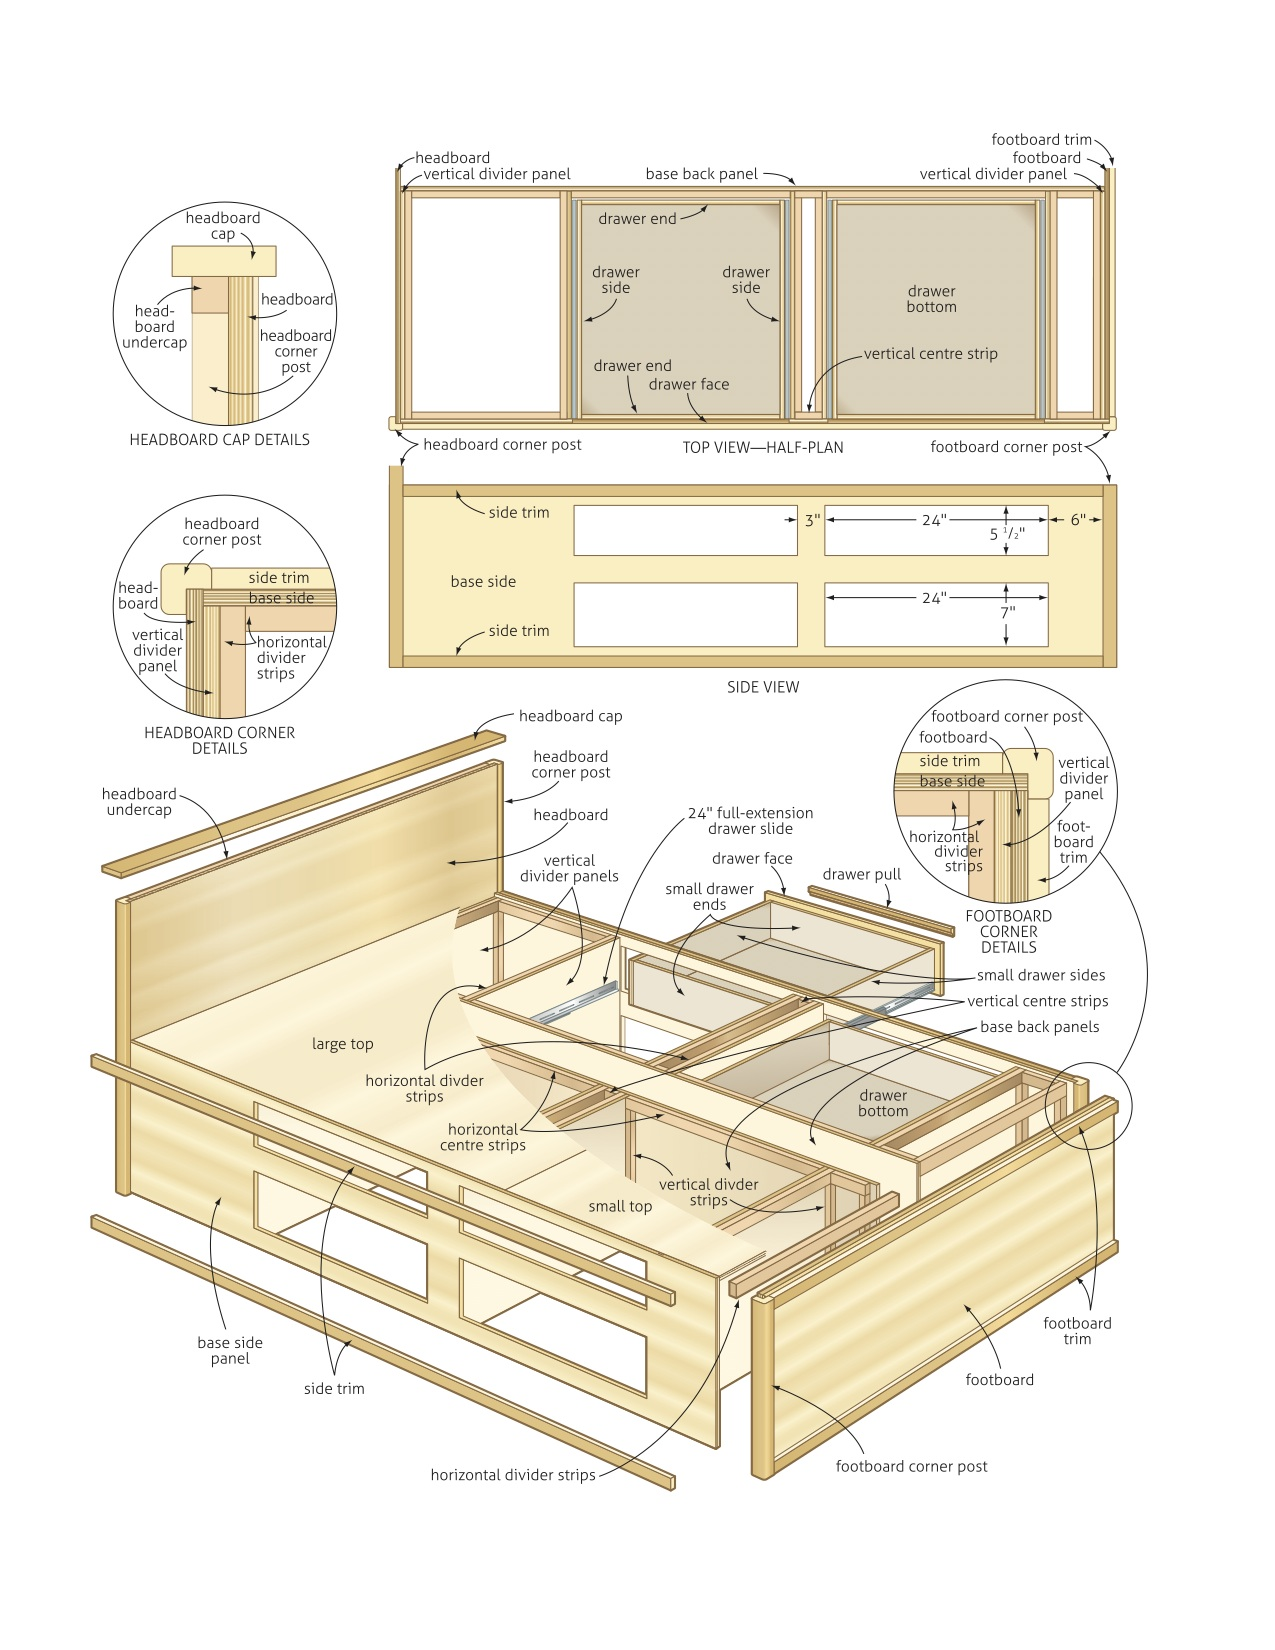 Creative ideas how to build a farmhouse storage bed with drawers creative ideas how to build a farmhouse storage bed with drawers space saving storage beds and drawers jeuxipadfo Image collections